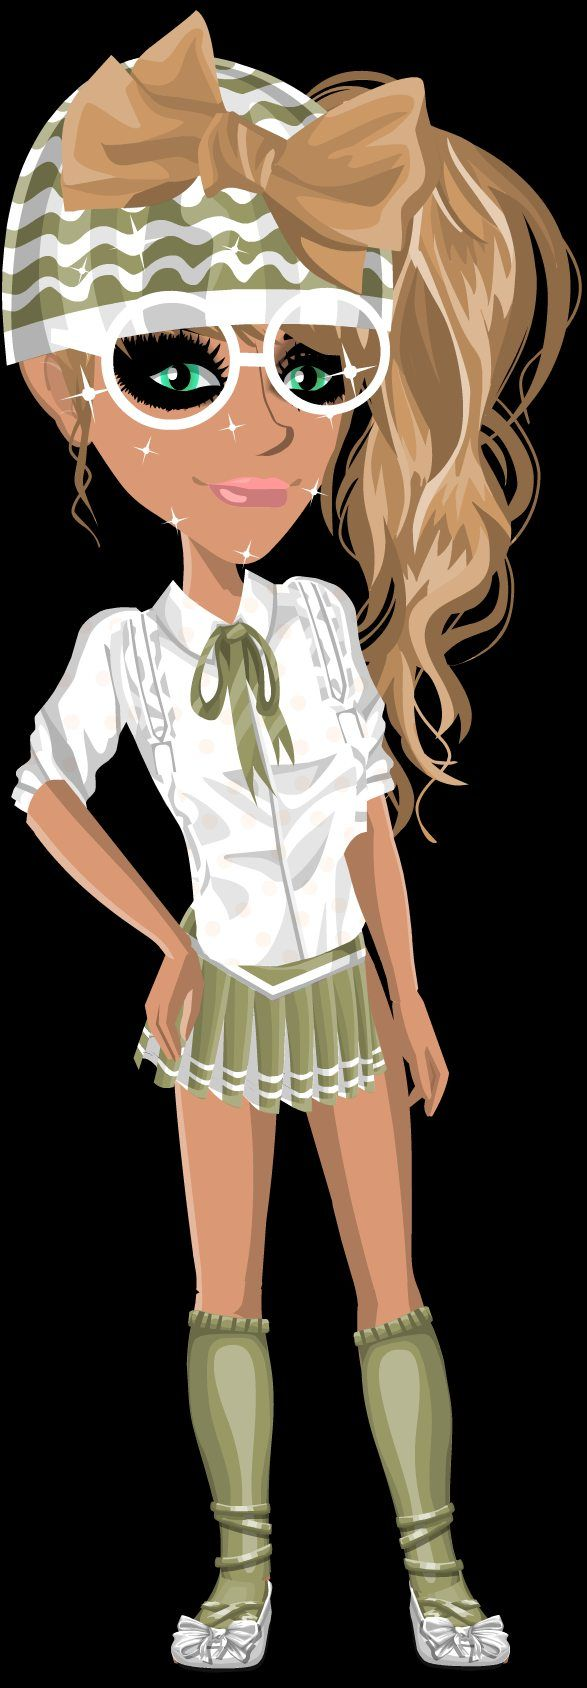 Cute outfits msp - Google Search | Moviestarplanet | Pinterest | Google search and Movie star planet